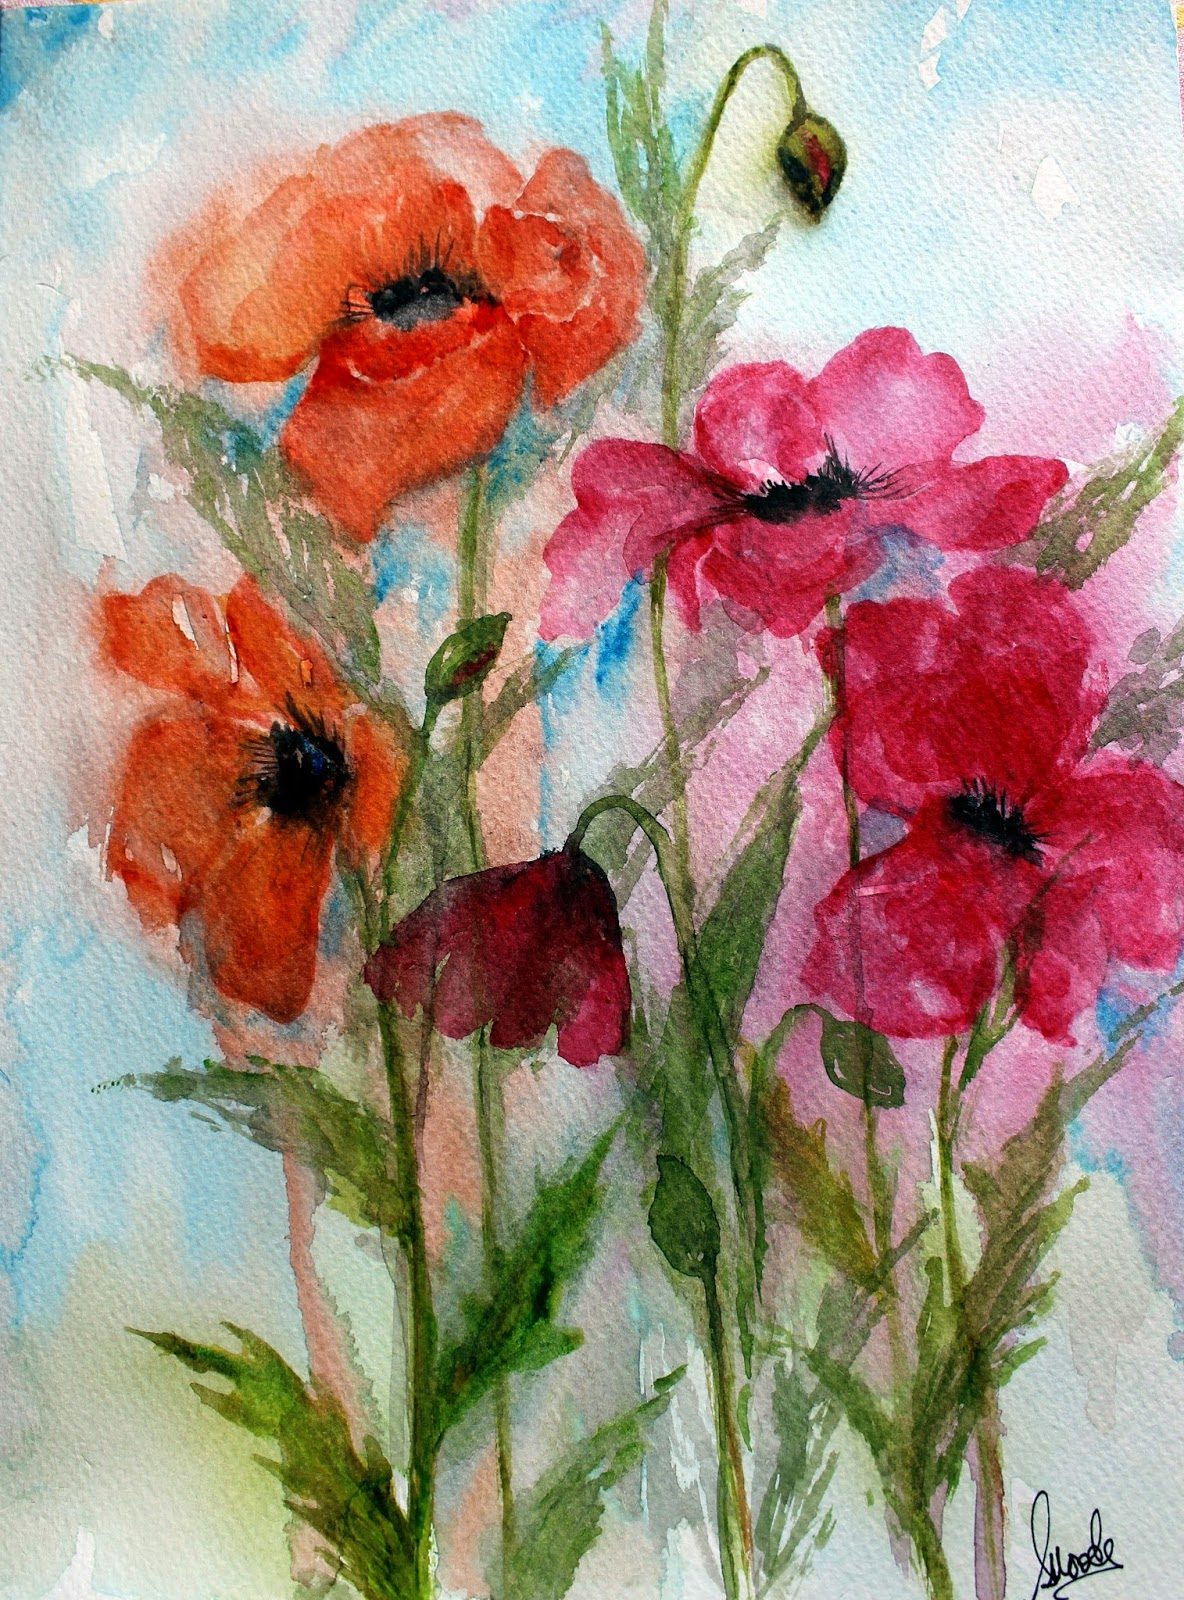 #poppy #flowers #blooms #poppies #painting #gardening #growing #mixed #two colours #watercolour